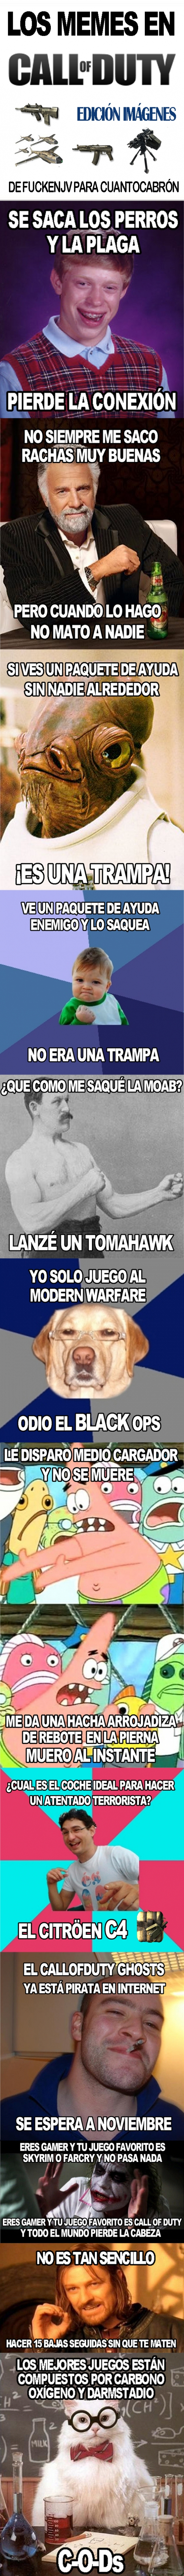 Meme_mix - Los memes en Call of Duty